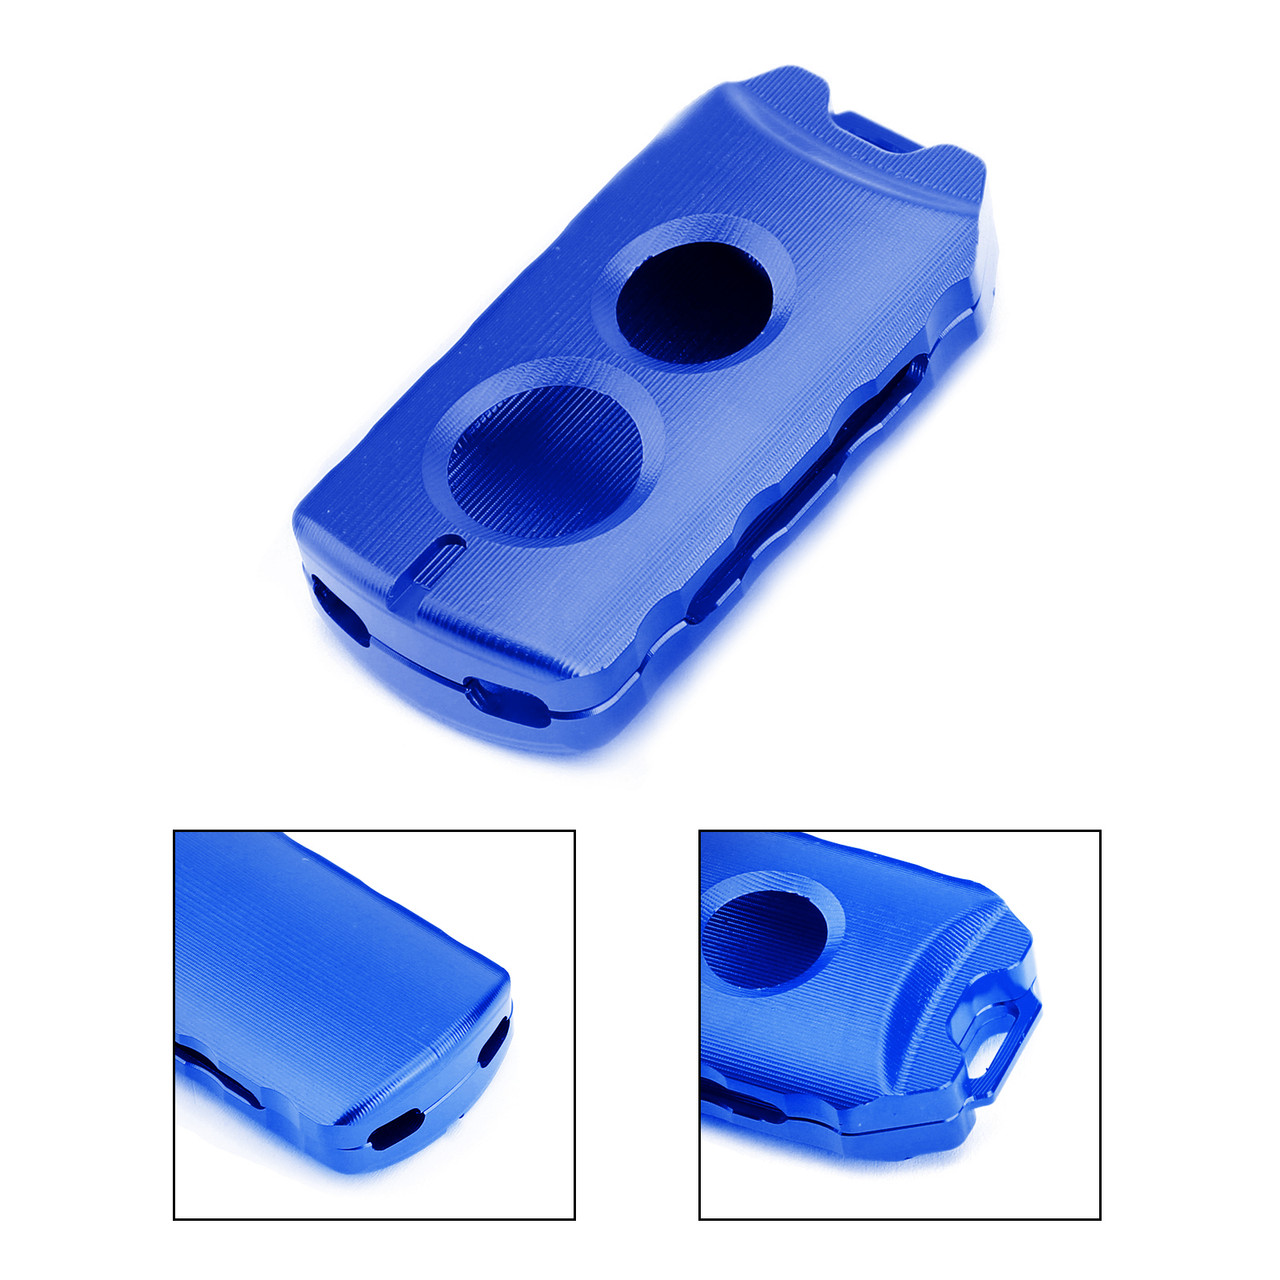 Key Case Cover Holder Protector For Yamaha NVX 155 AEROX 155 15-19 XMAX 125/250/300/400 17-19 Blue